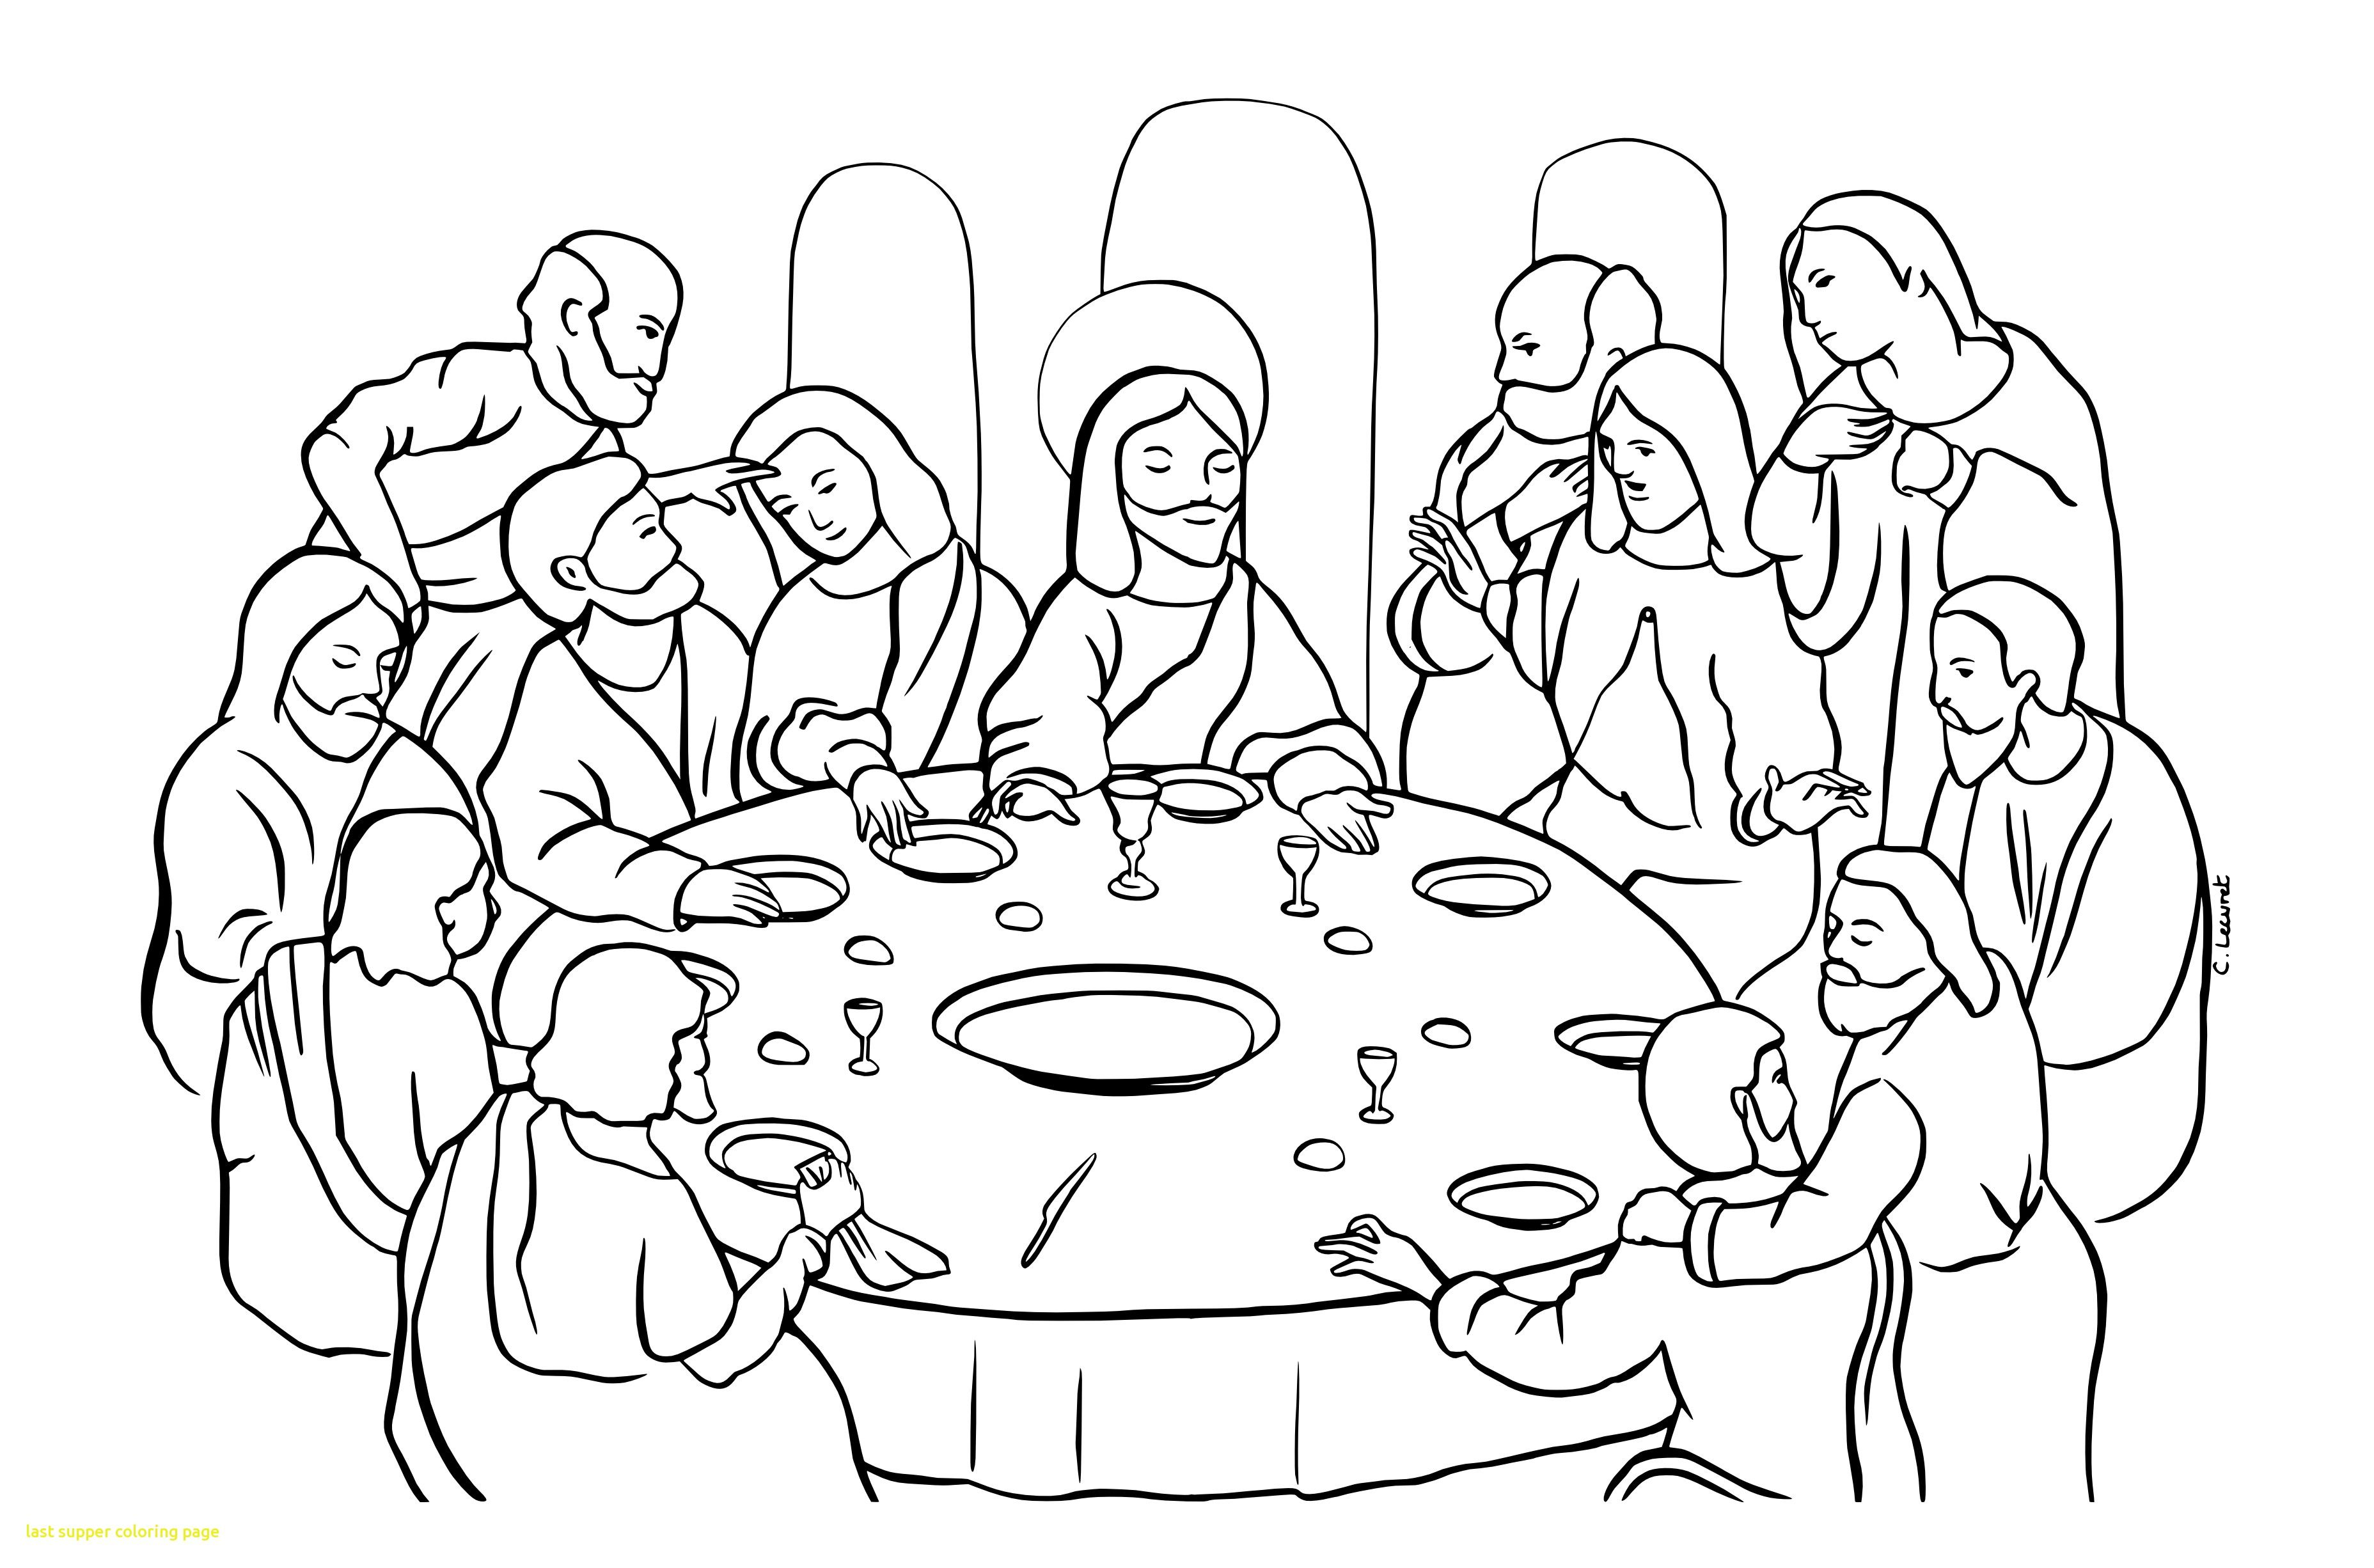 Lords Supper Page Coloring Pages